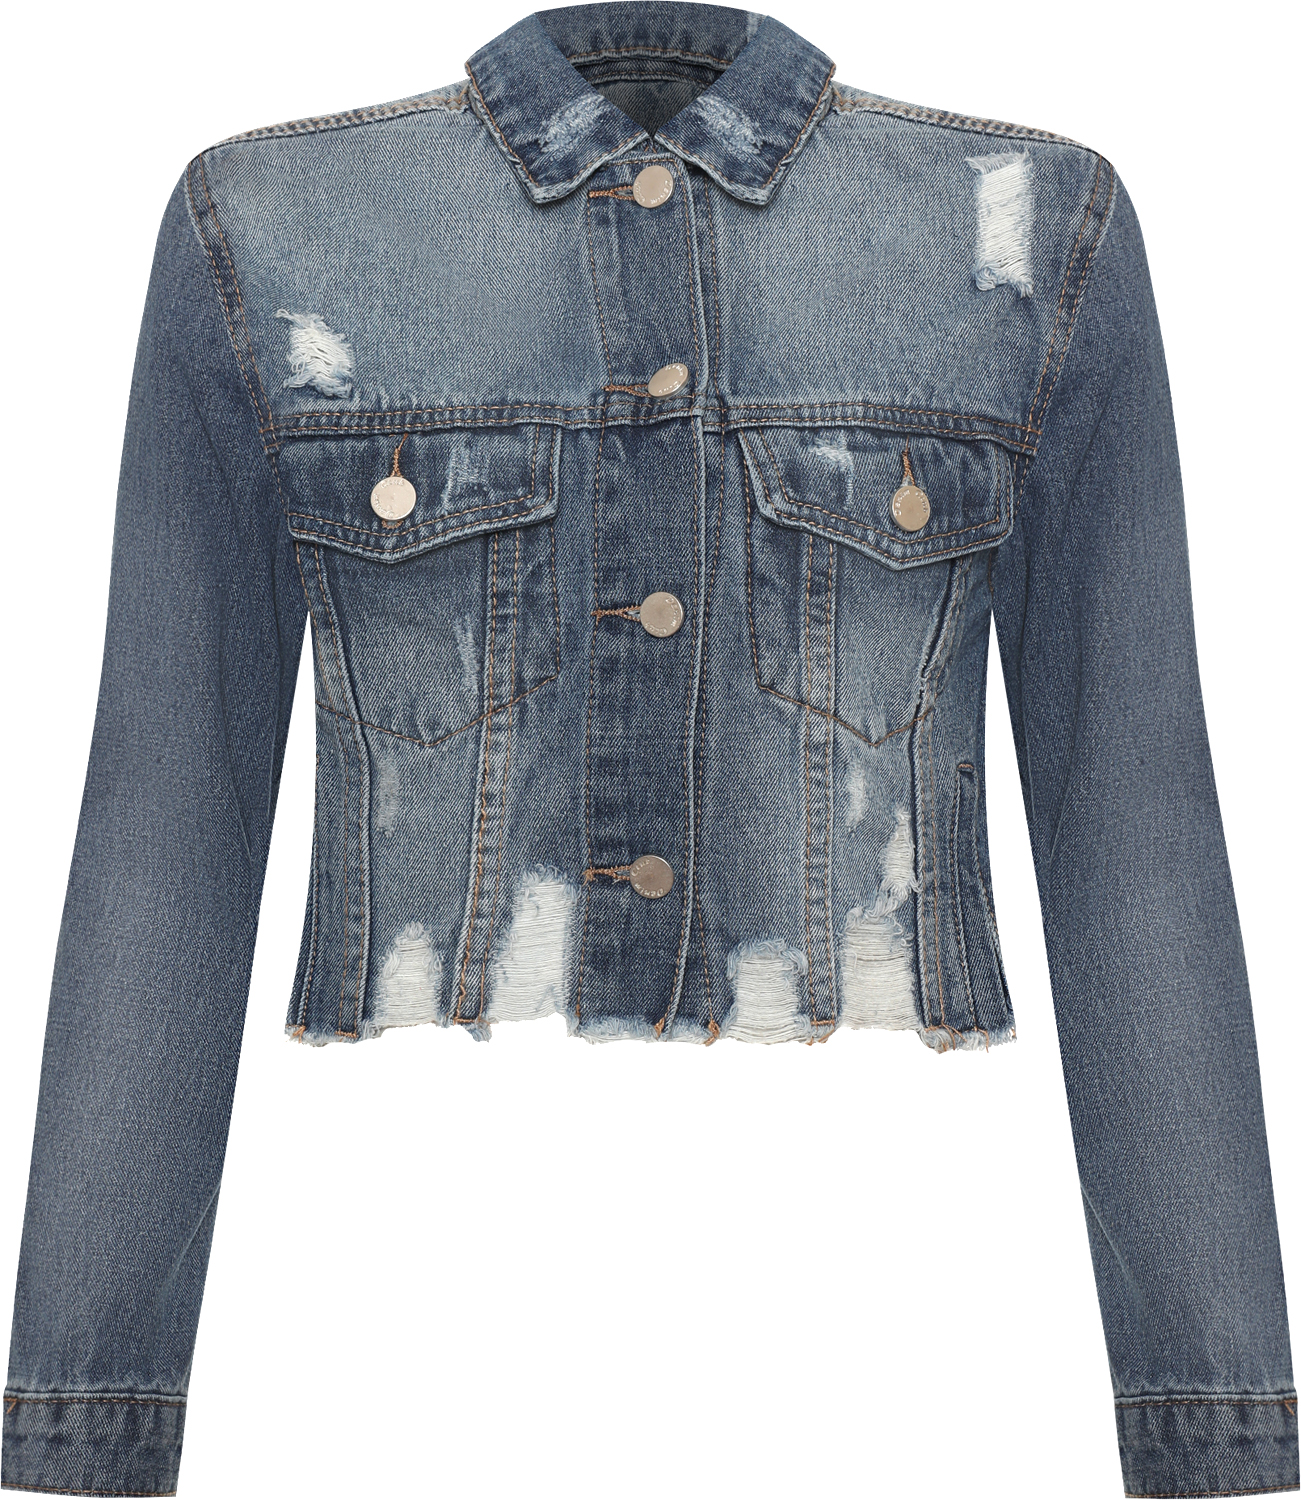 98b5a847fc6 Women s Clothing Women Ripped Distressed Cropped Denim Jacket Ladies Long  Sleeve Pocket Washed